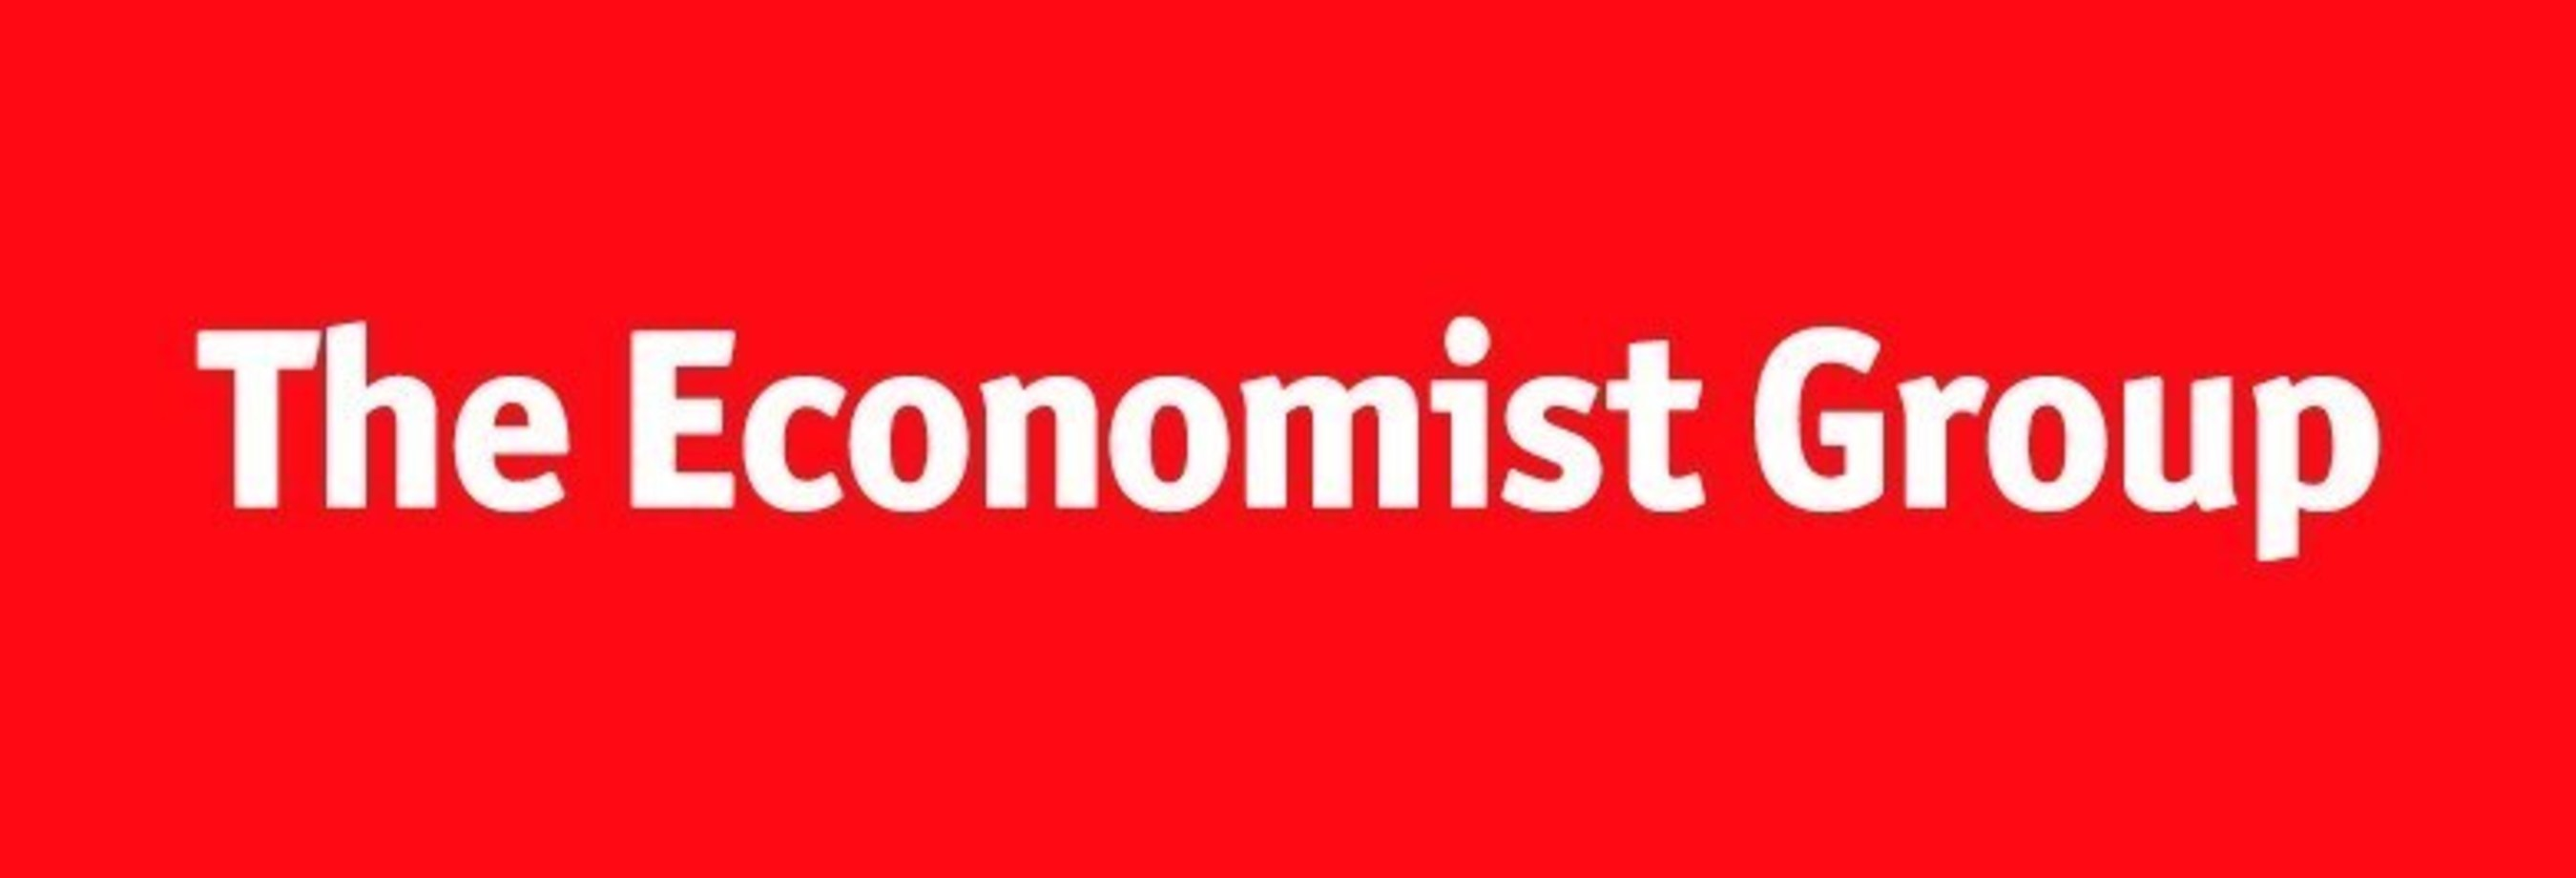 The Economist Group wins Gold for Best Overall Content Marketing Solution at 2015 Content Council Pearl Awards